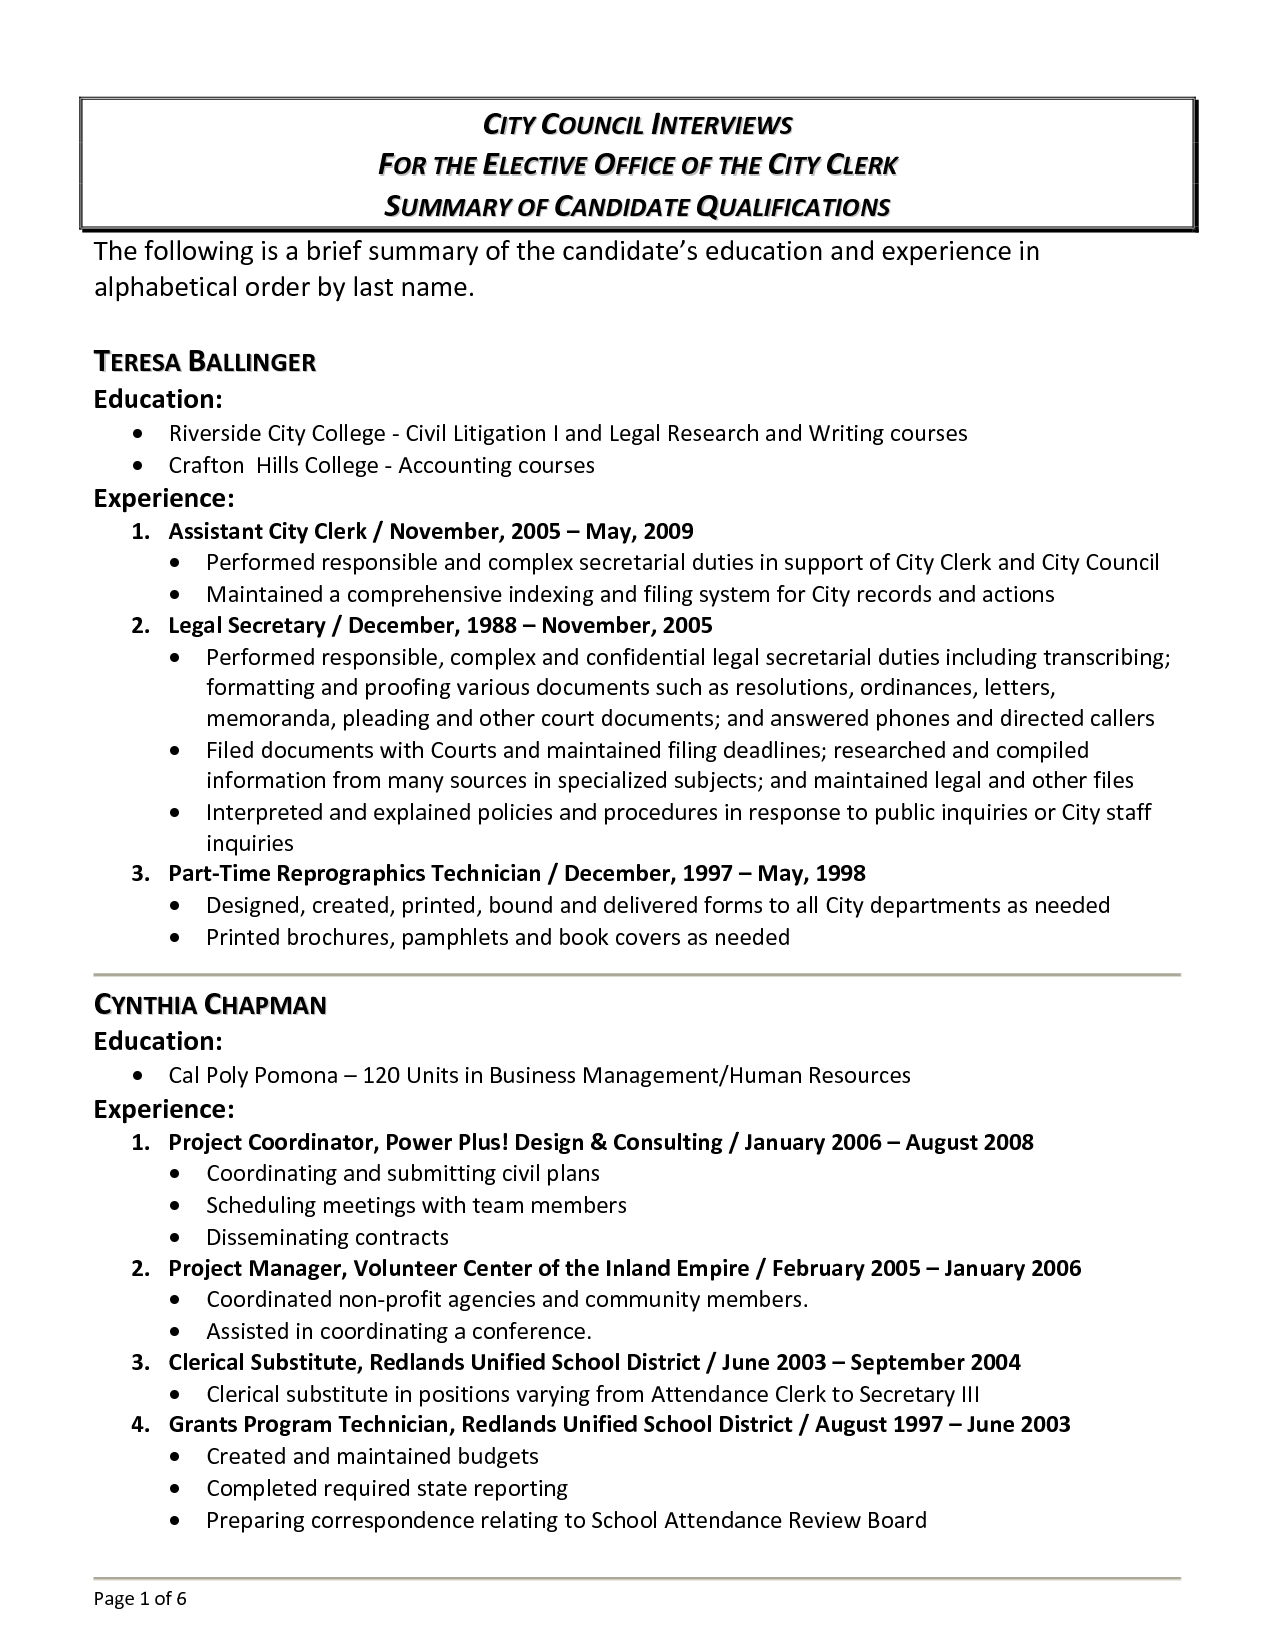 Examples of resume summary of qualifications